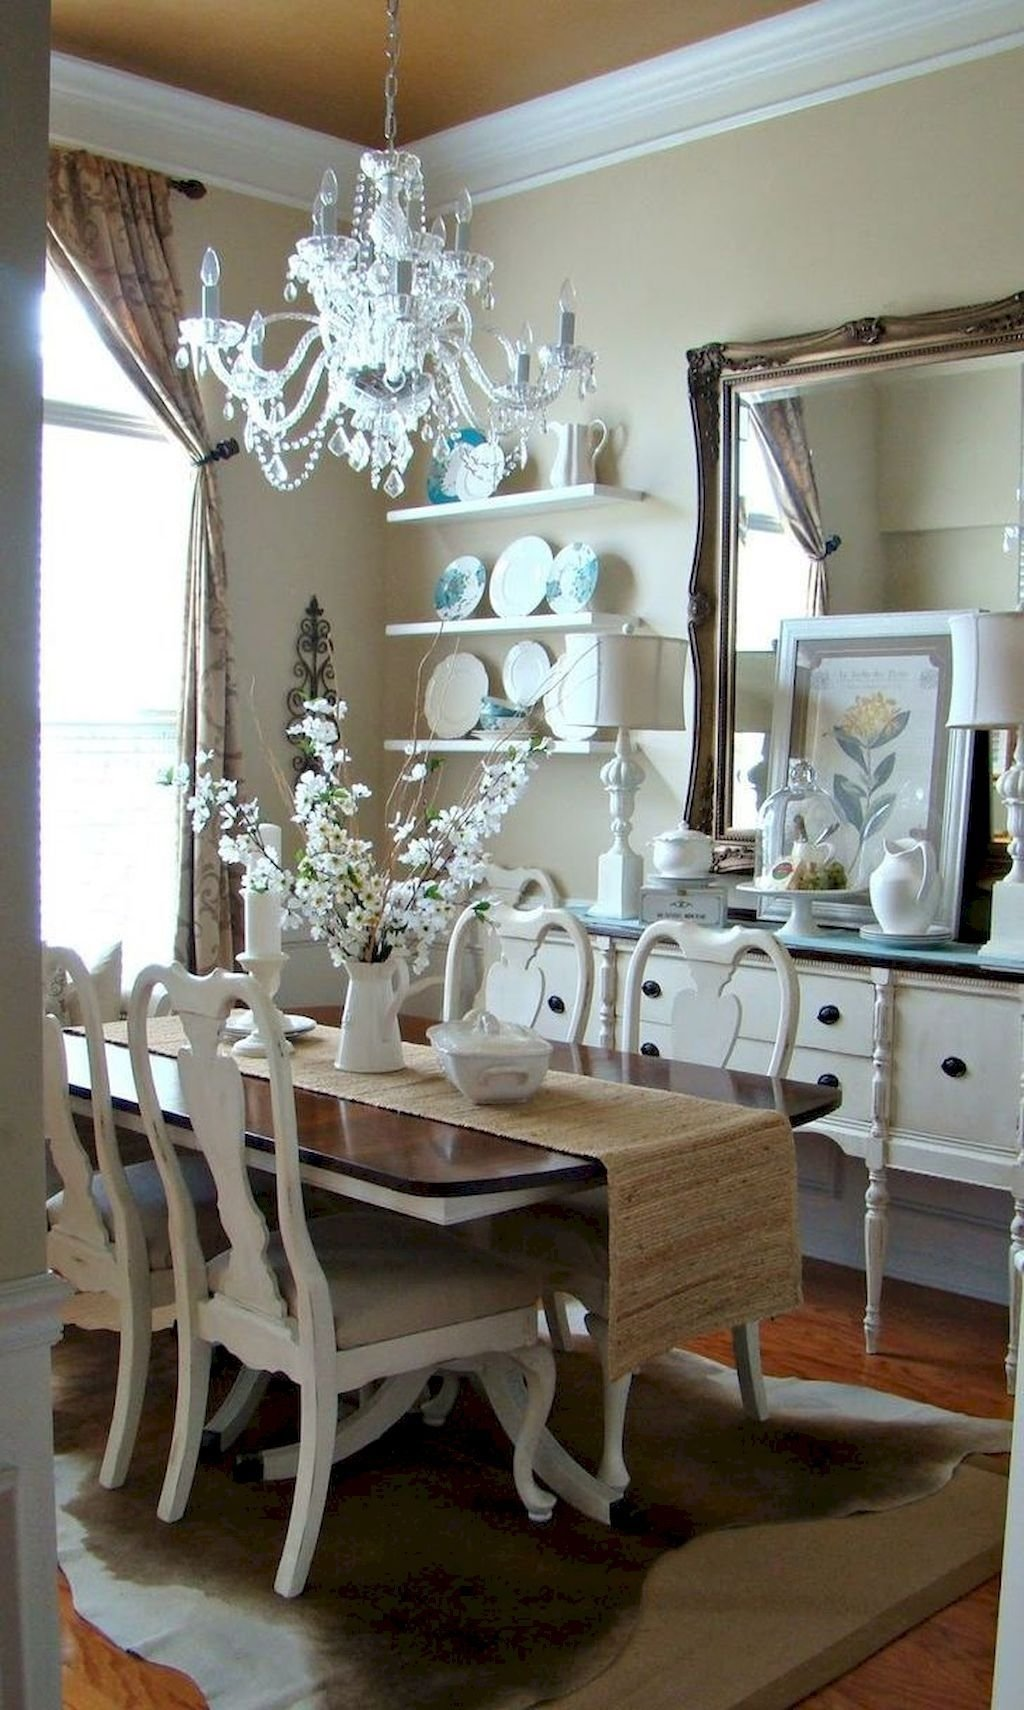 10 Perfect French Country Dining Room Ideas 55 modern french country dining room table decor ideas dining room 2021